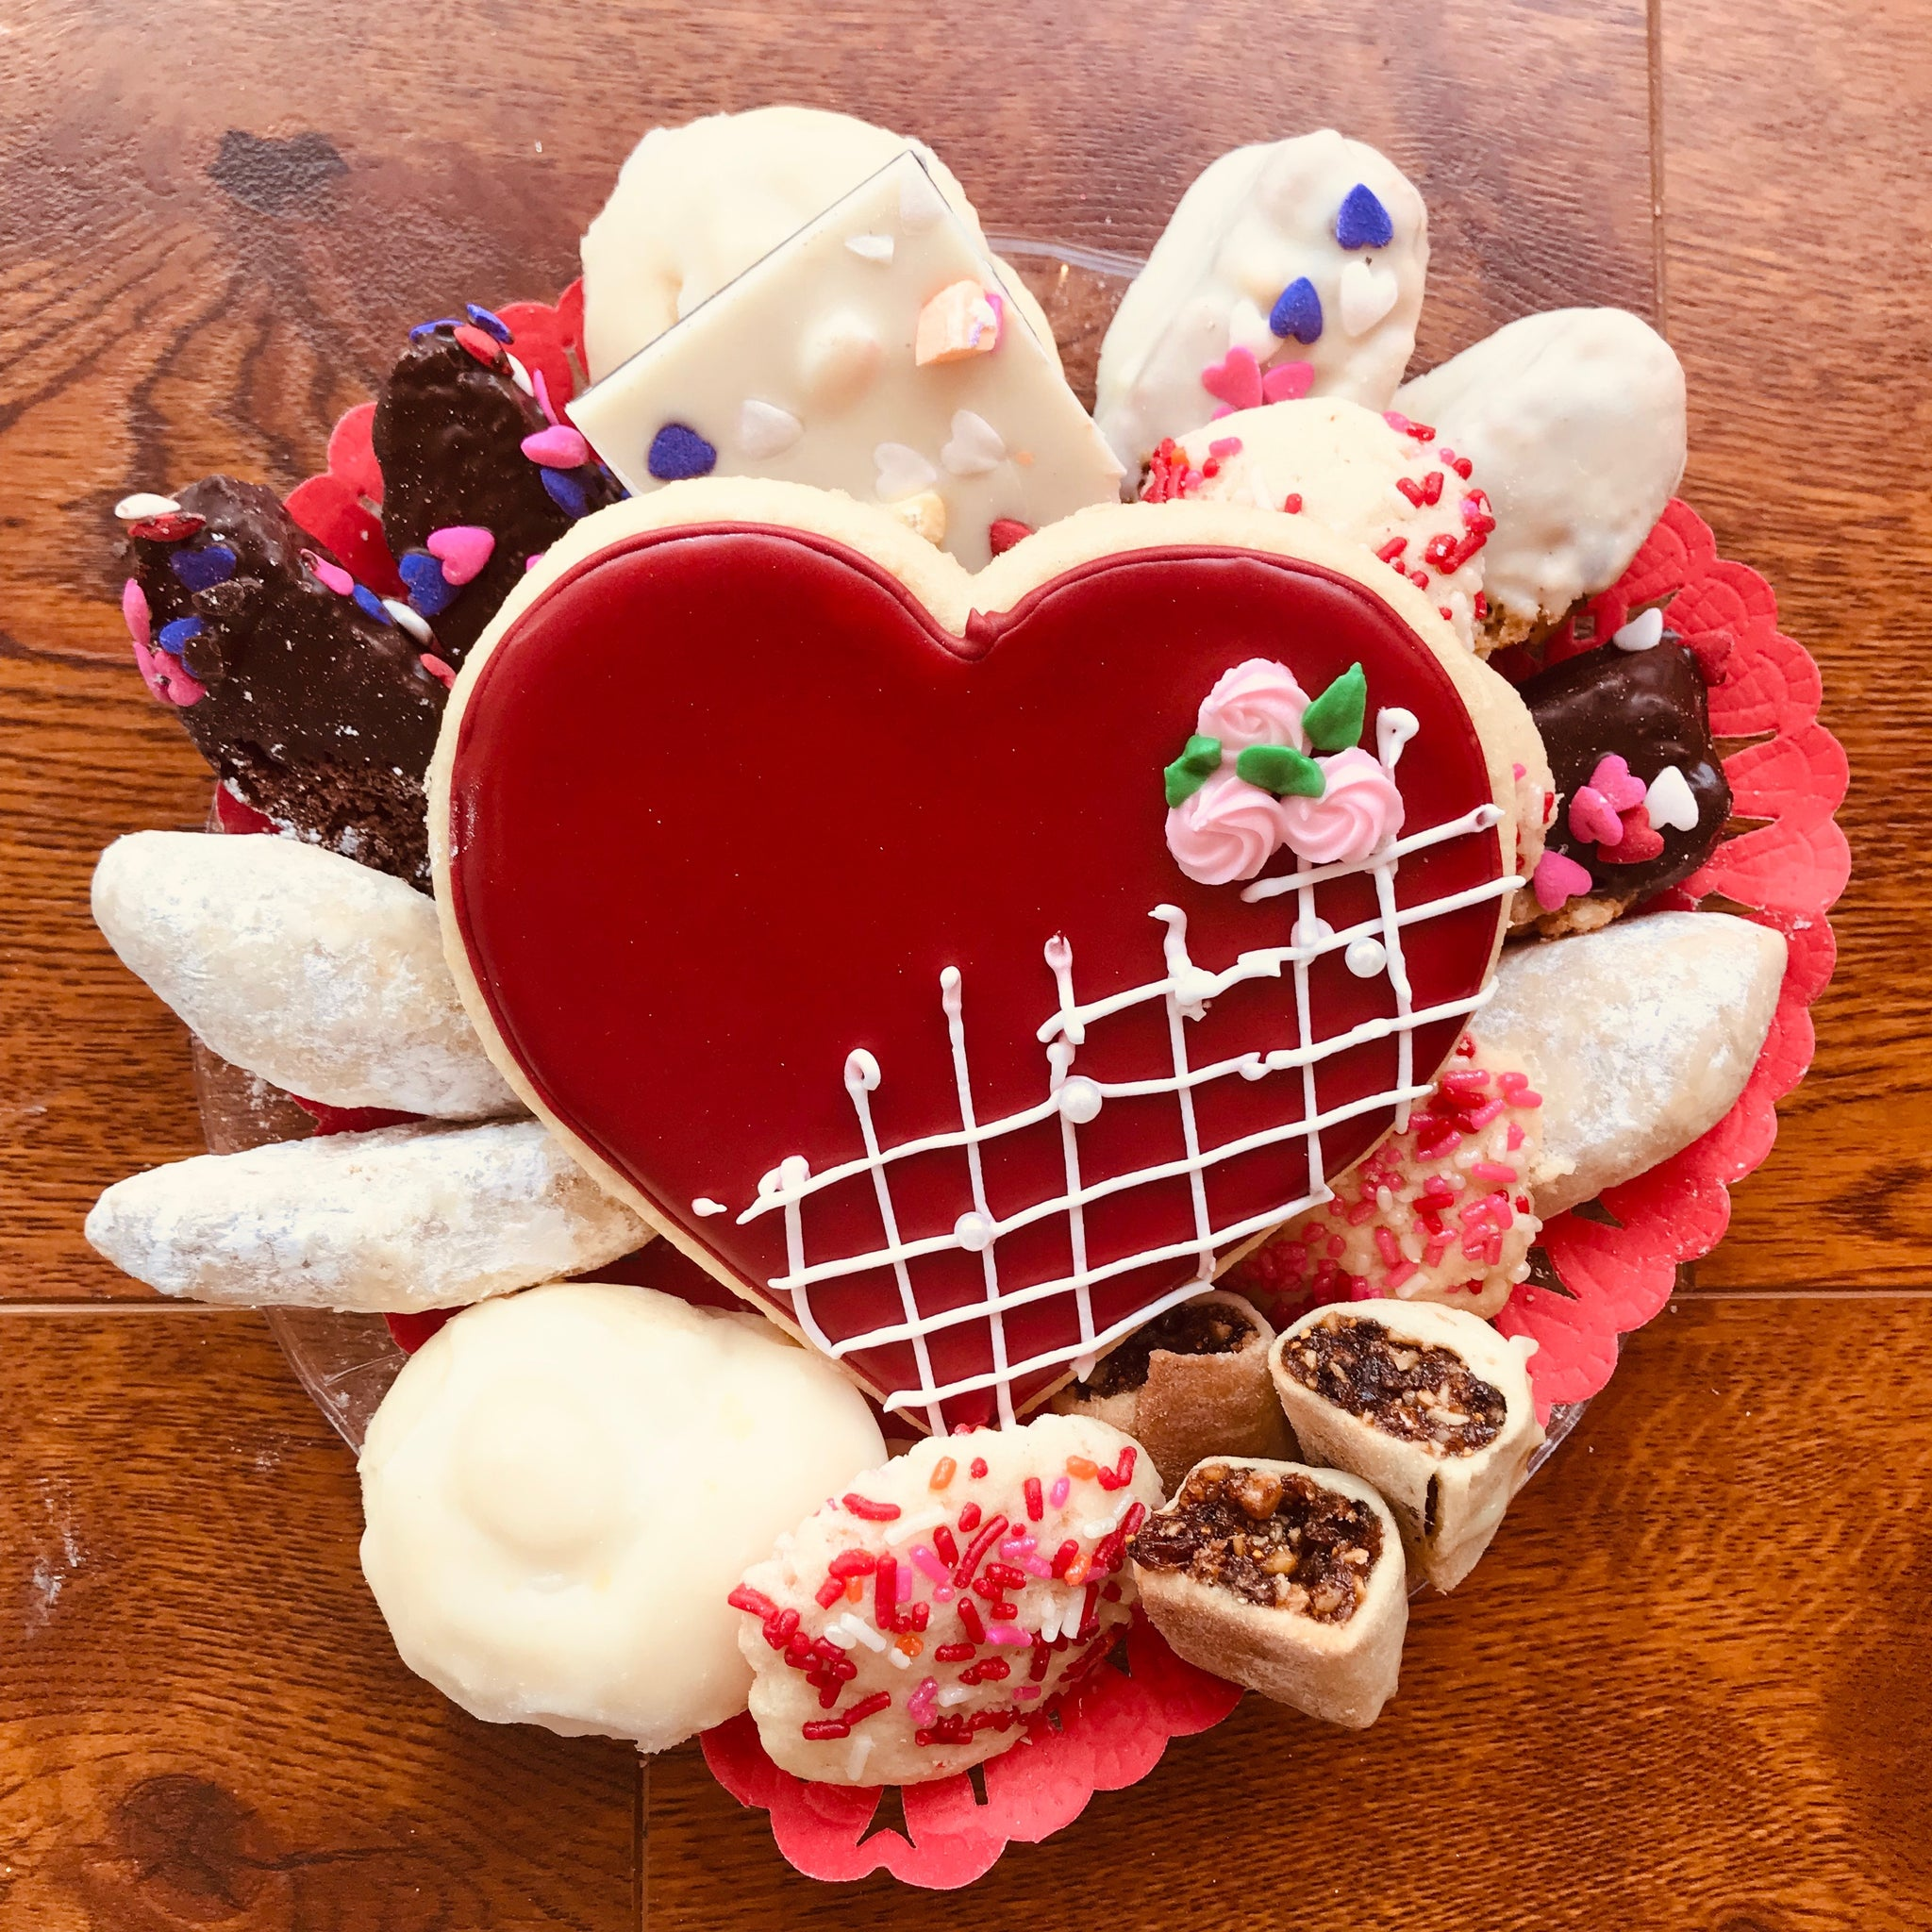 Valentine's Day Assortment - Small 1lb Cookie Assortment